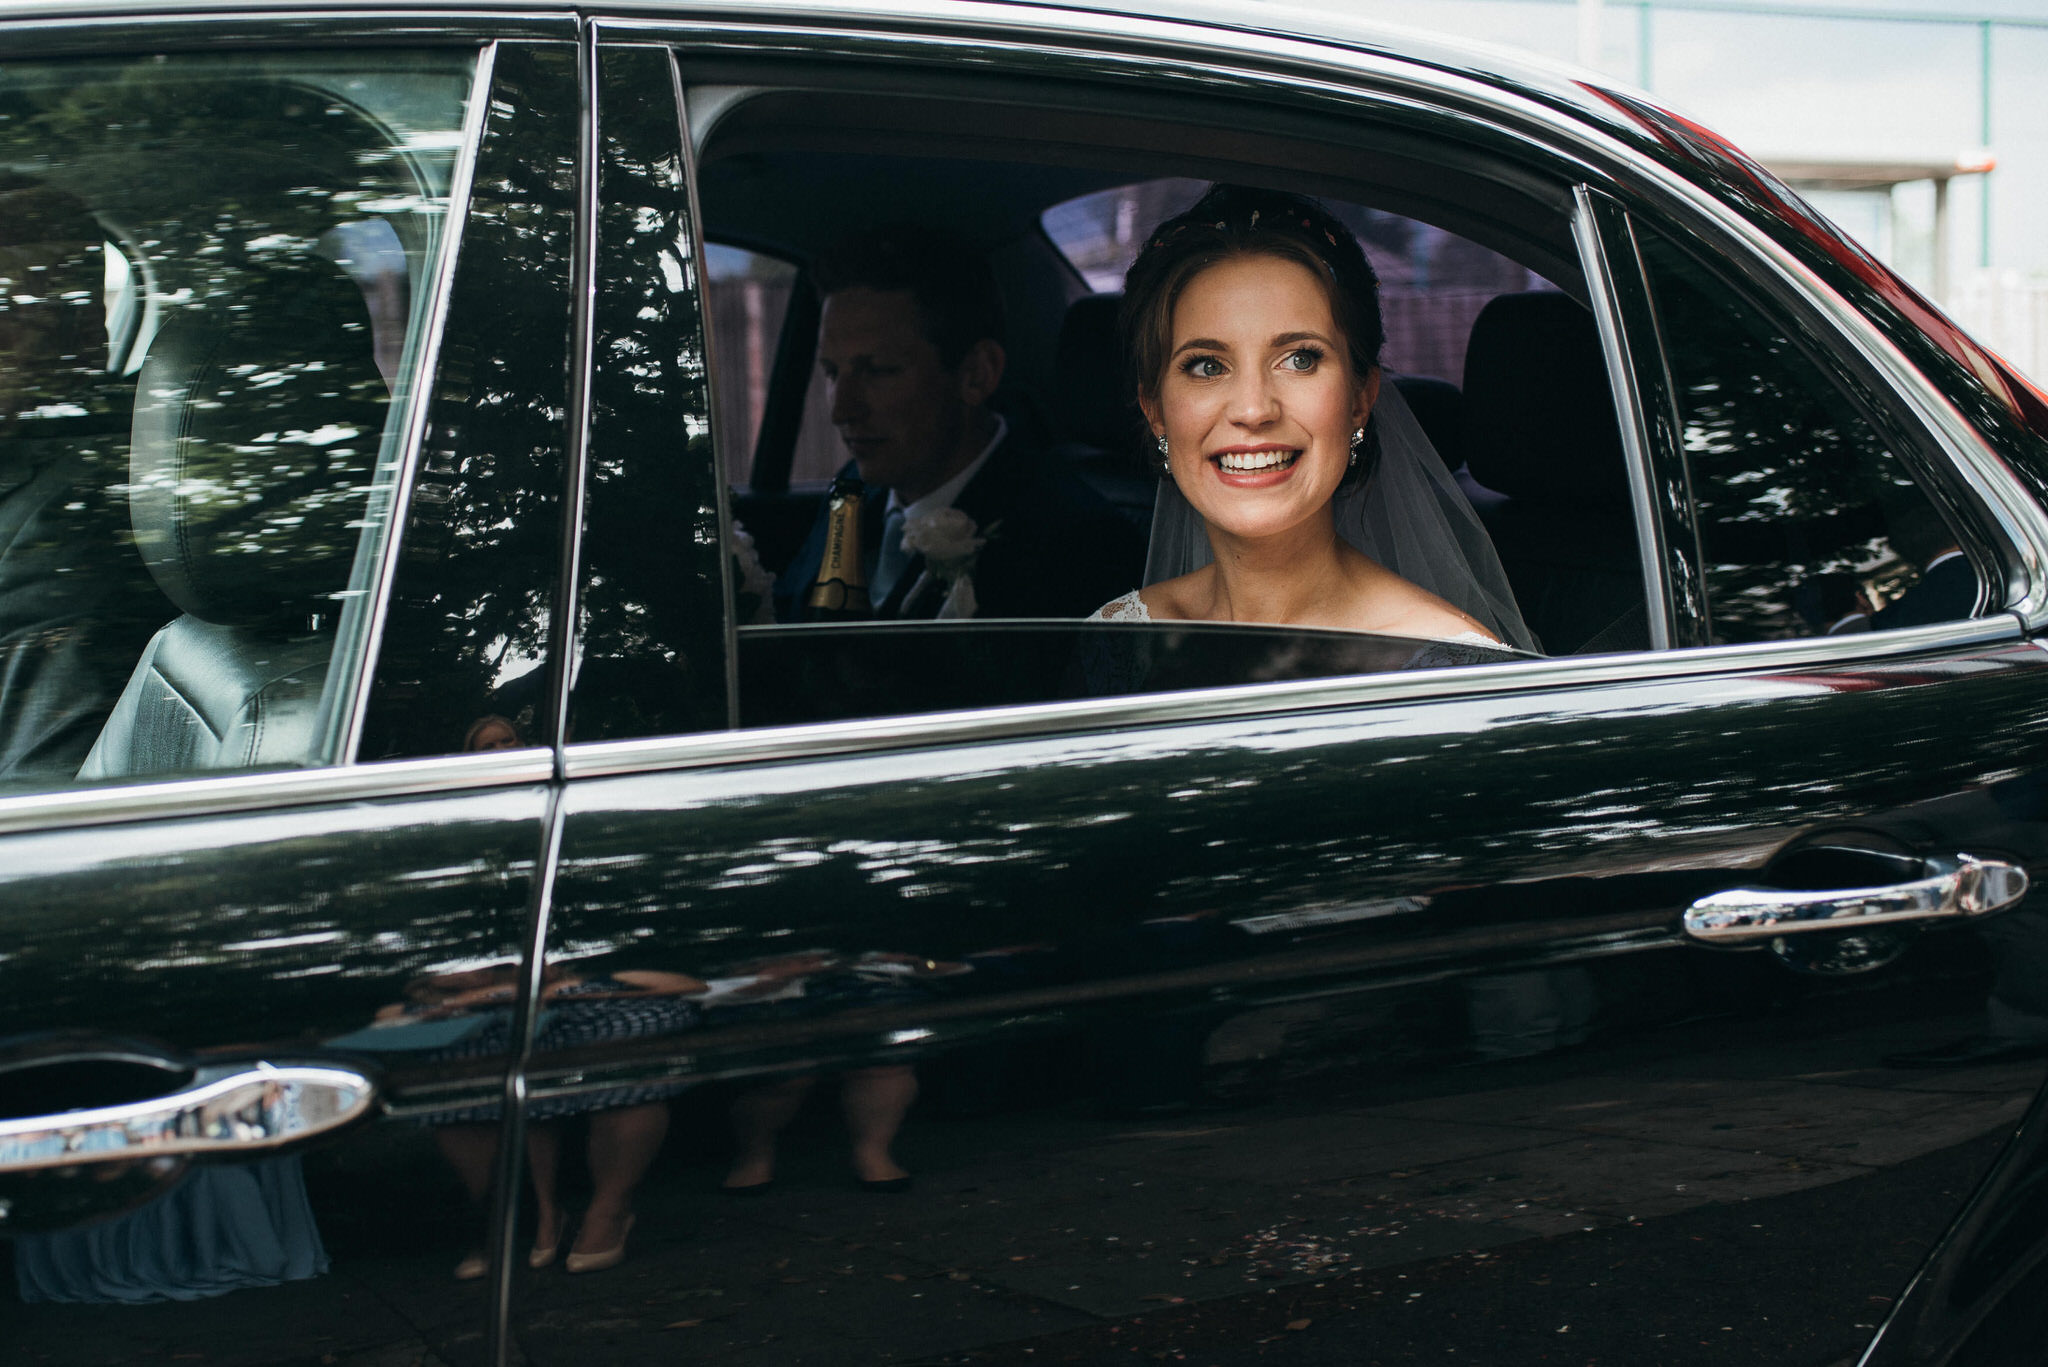 Newlyweds leave in car